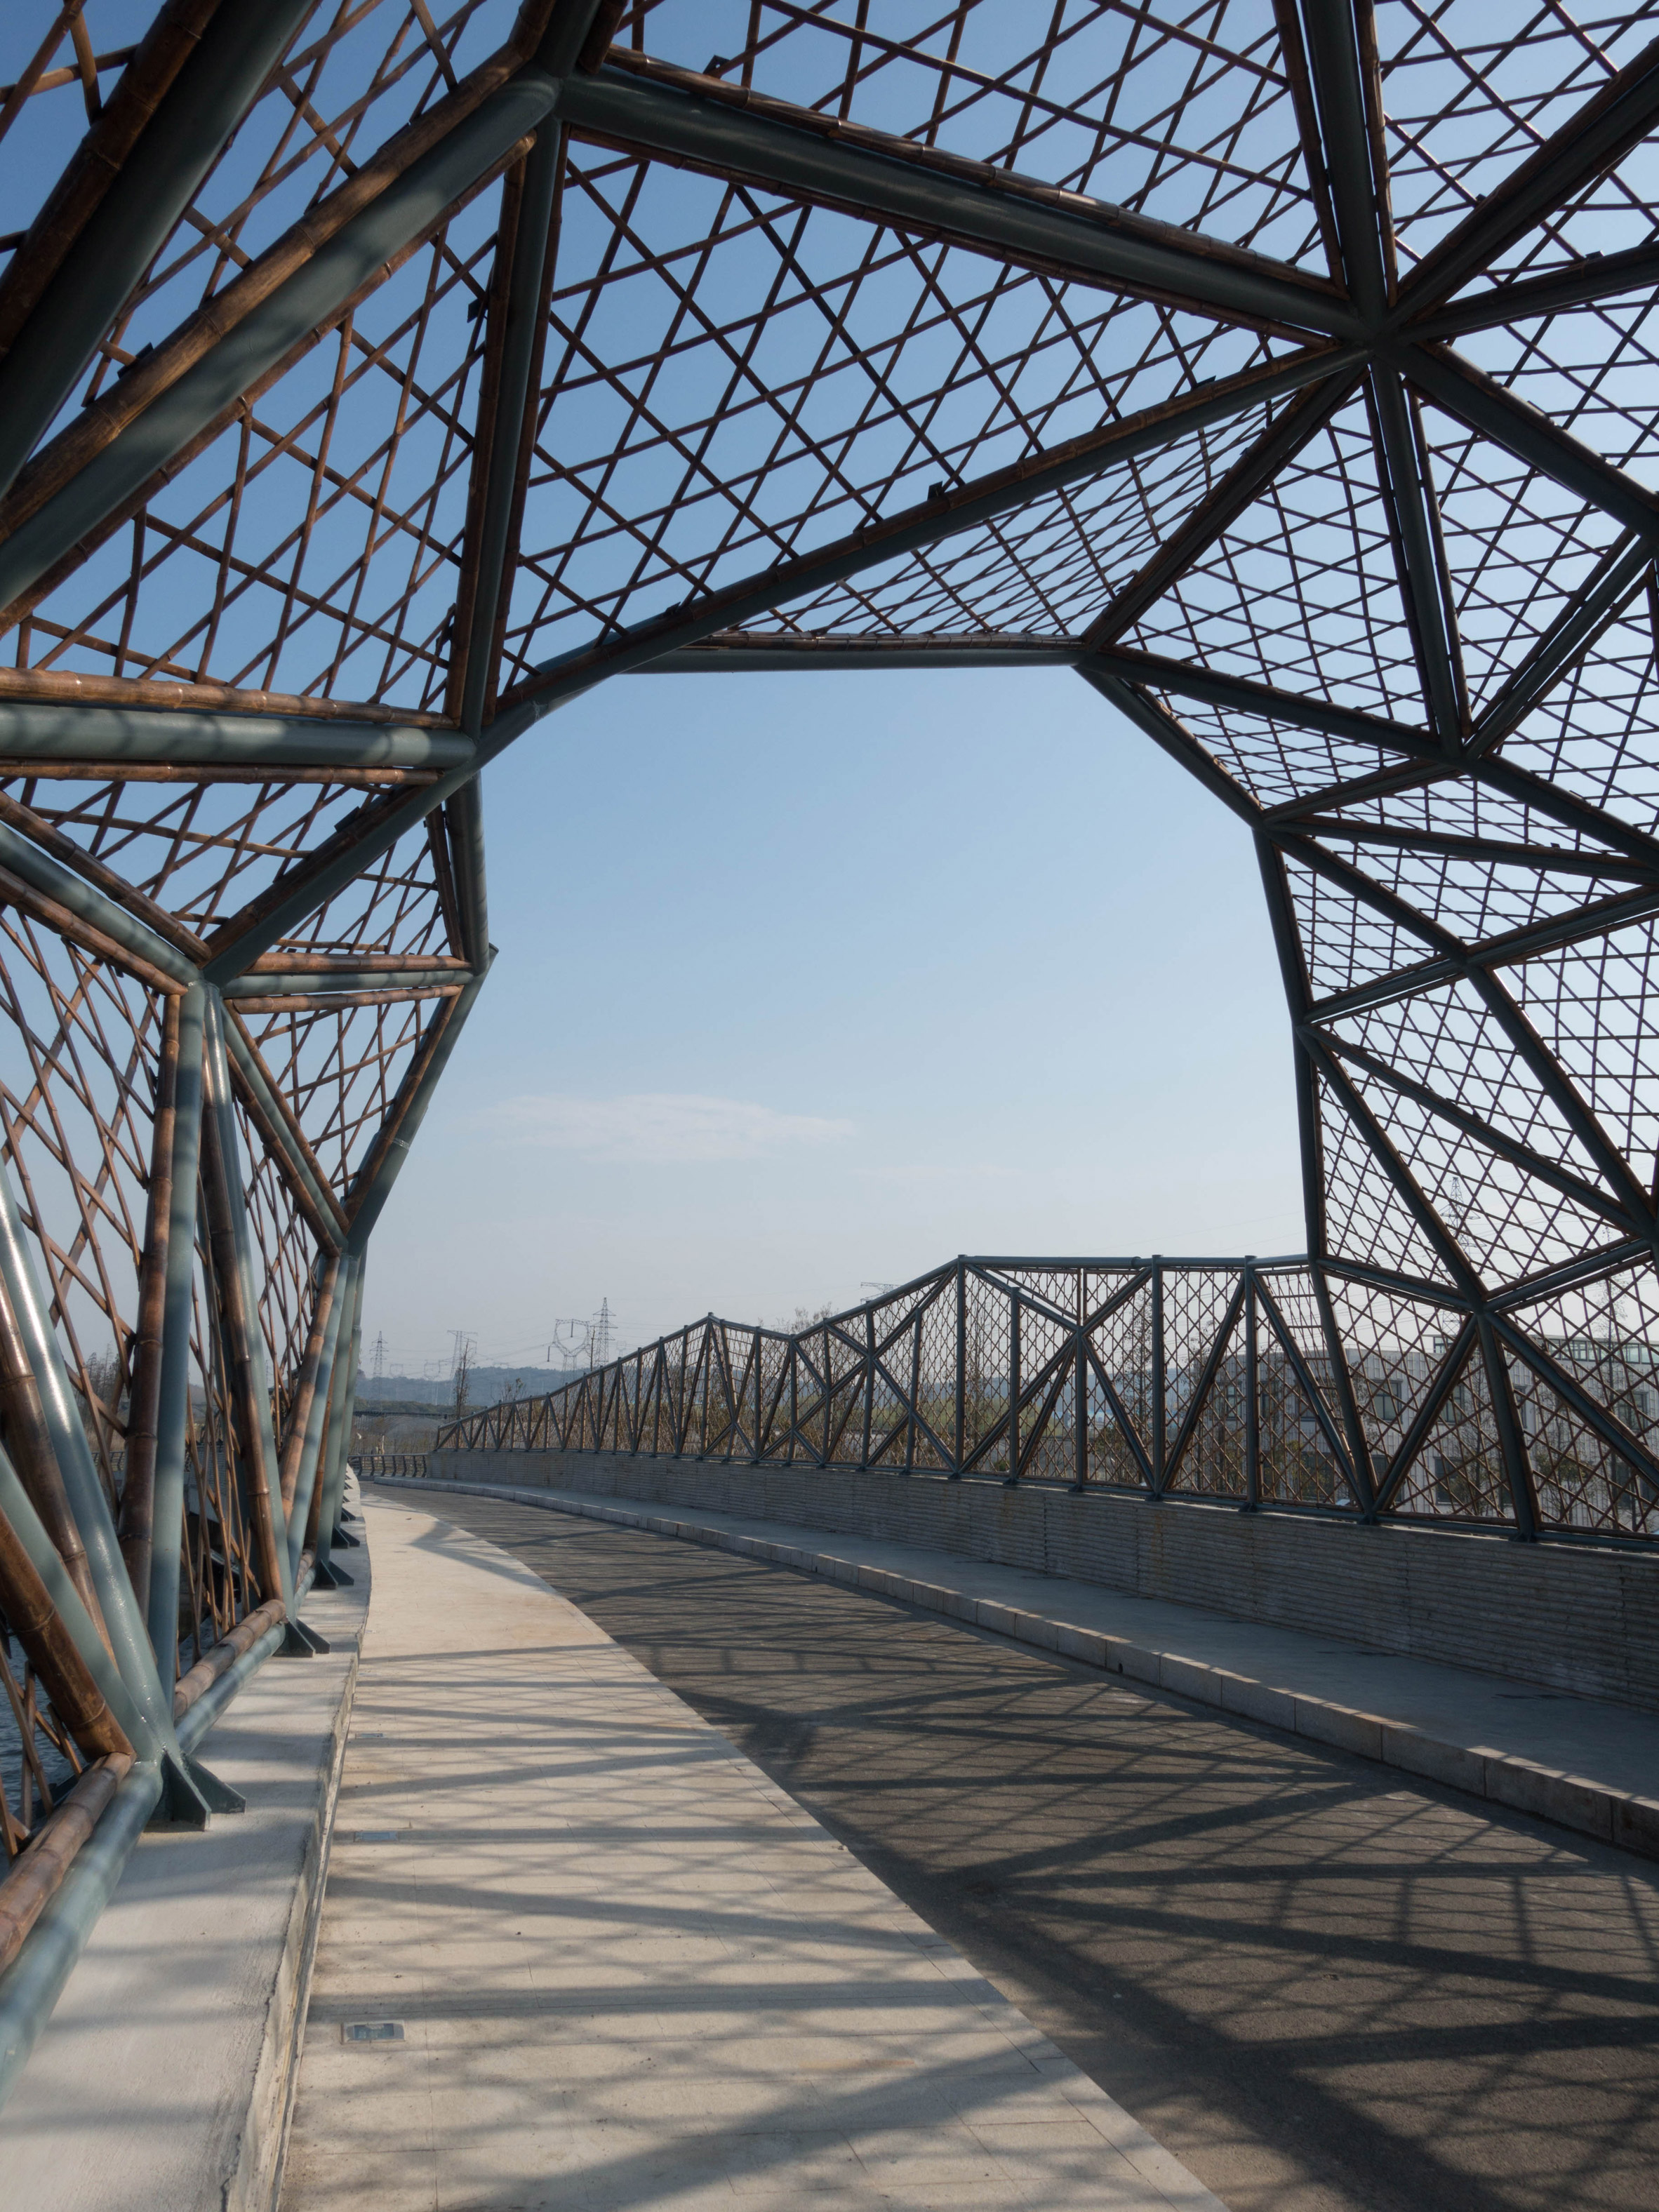 Latticed bamboo bridge by Mimesis Architecture Studio references Jiangsu's craft traditions